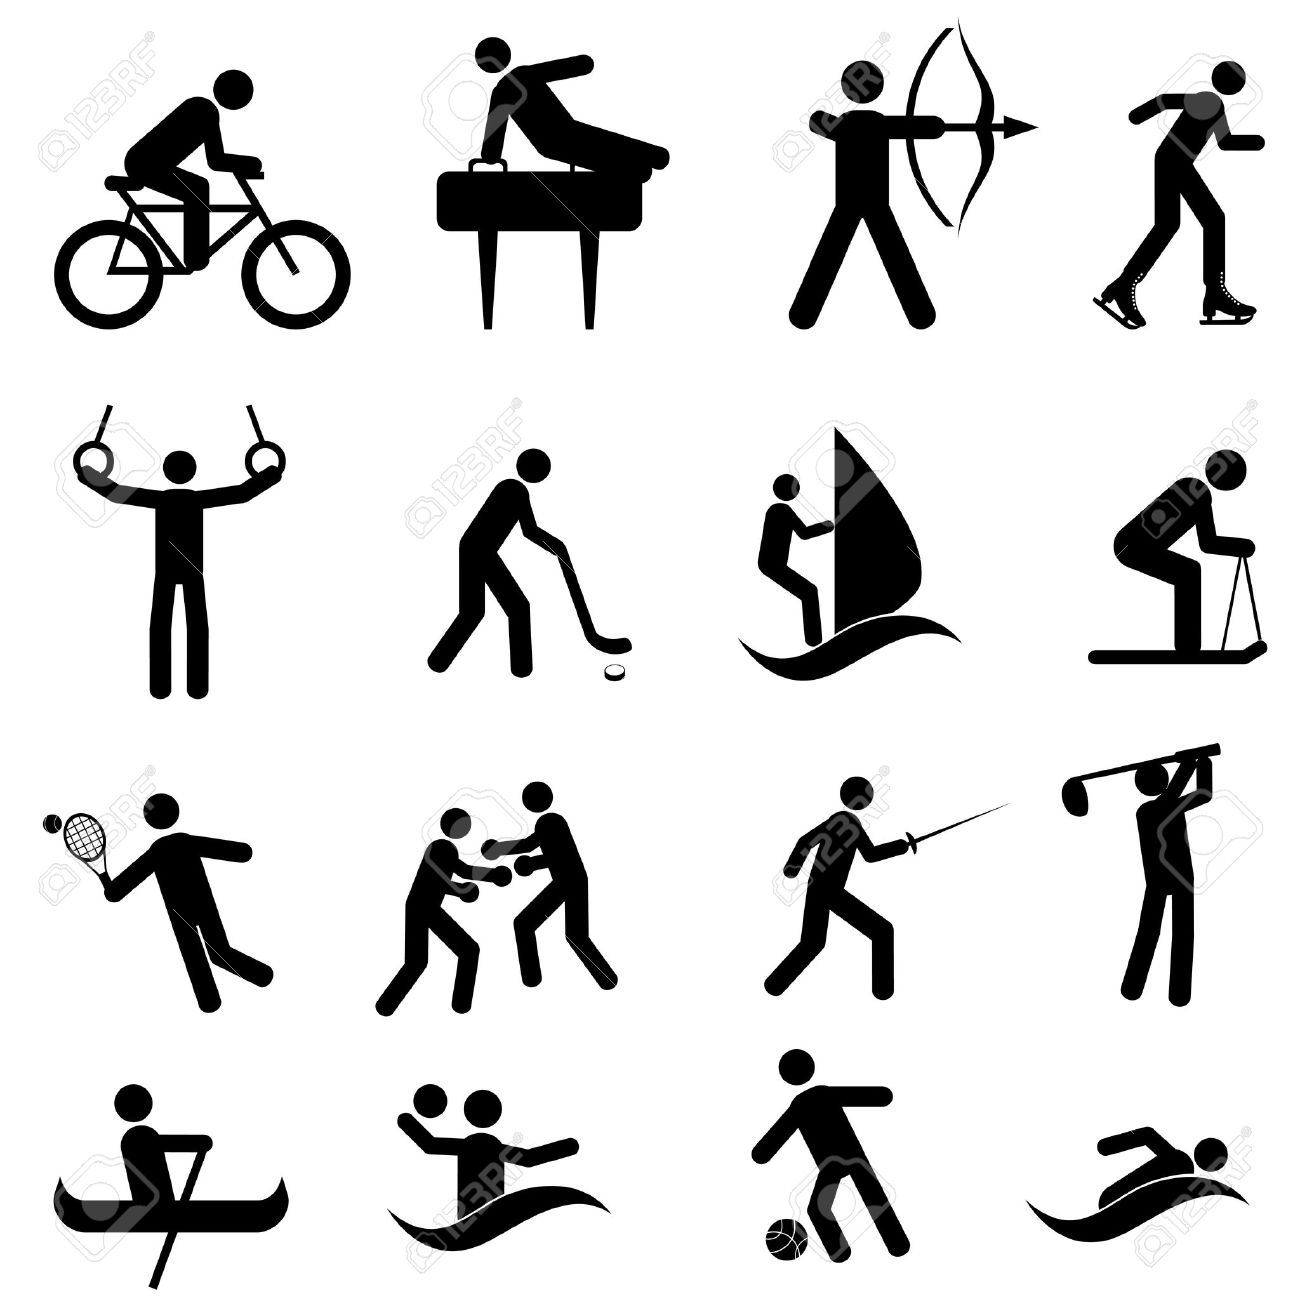 Sports And Athletic Icon Set In Black Royalty Free Cliparts.